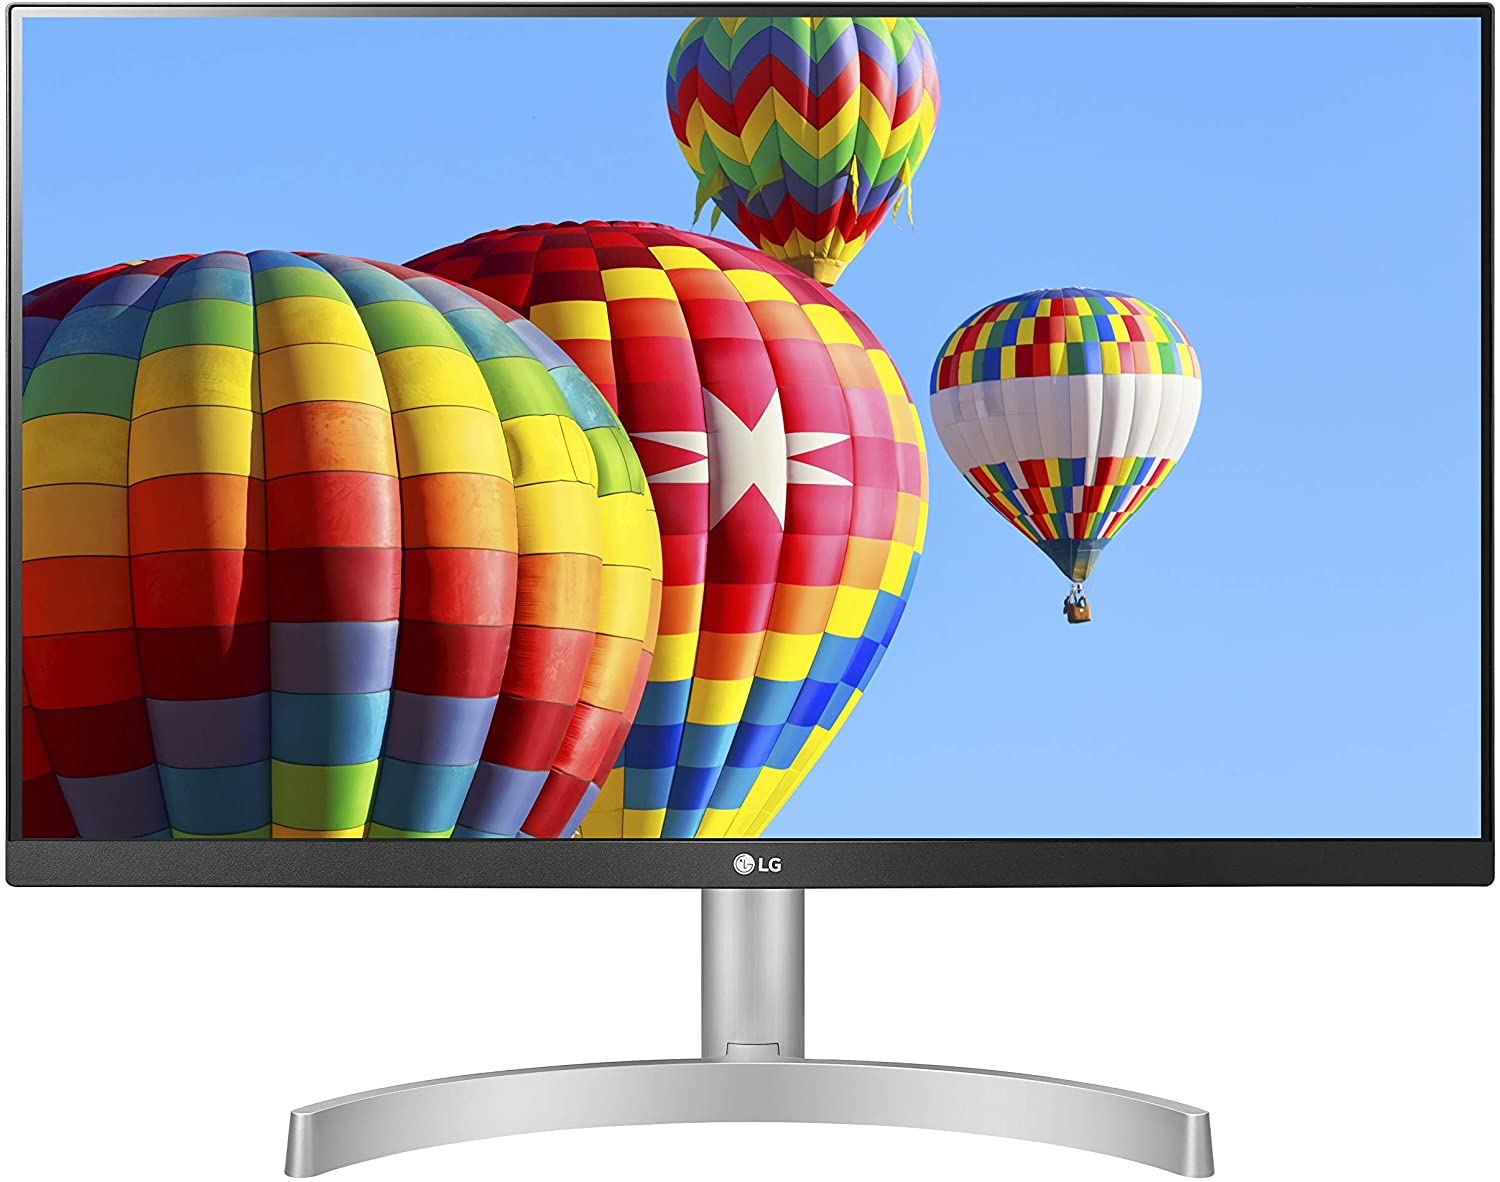 I migliori monitor in offerta su Amazon